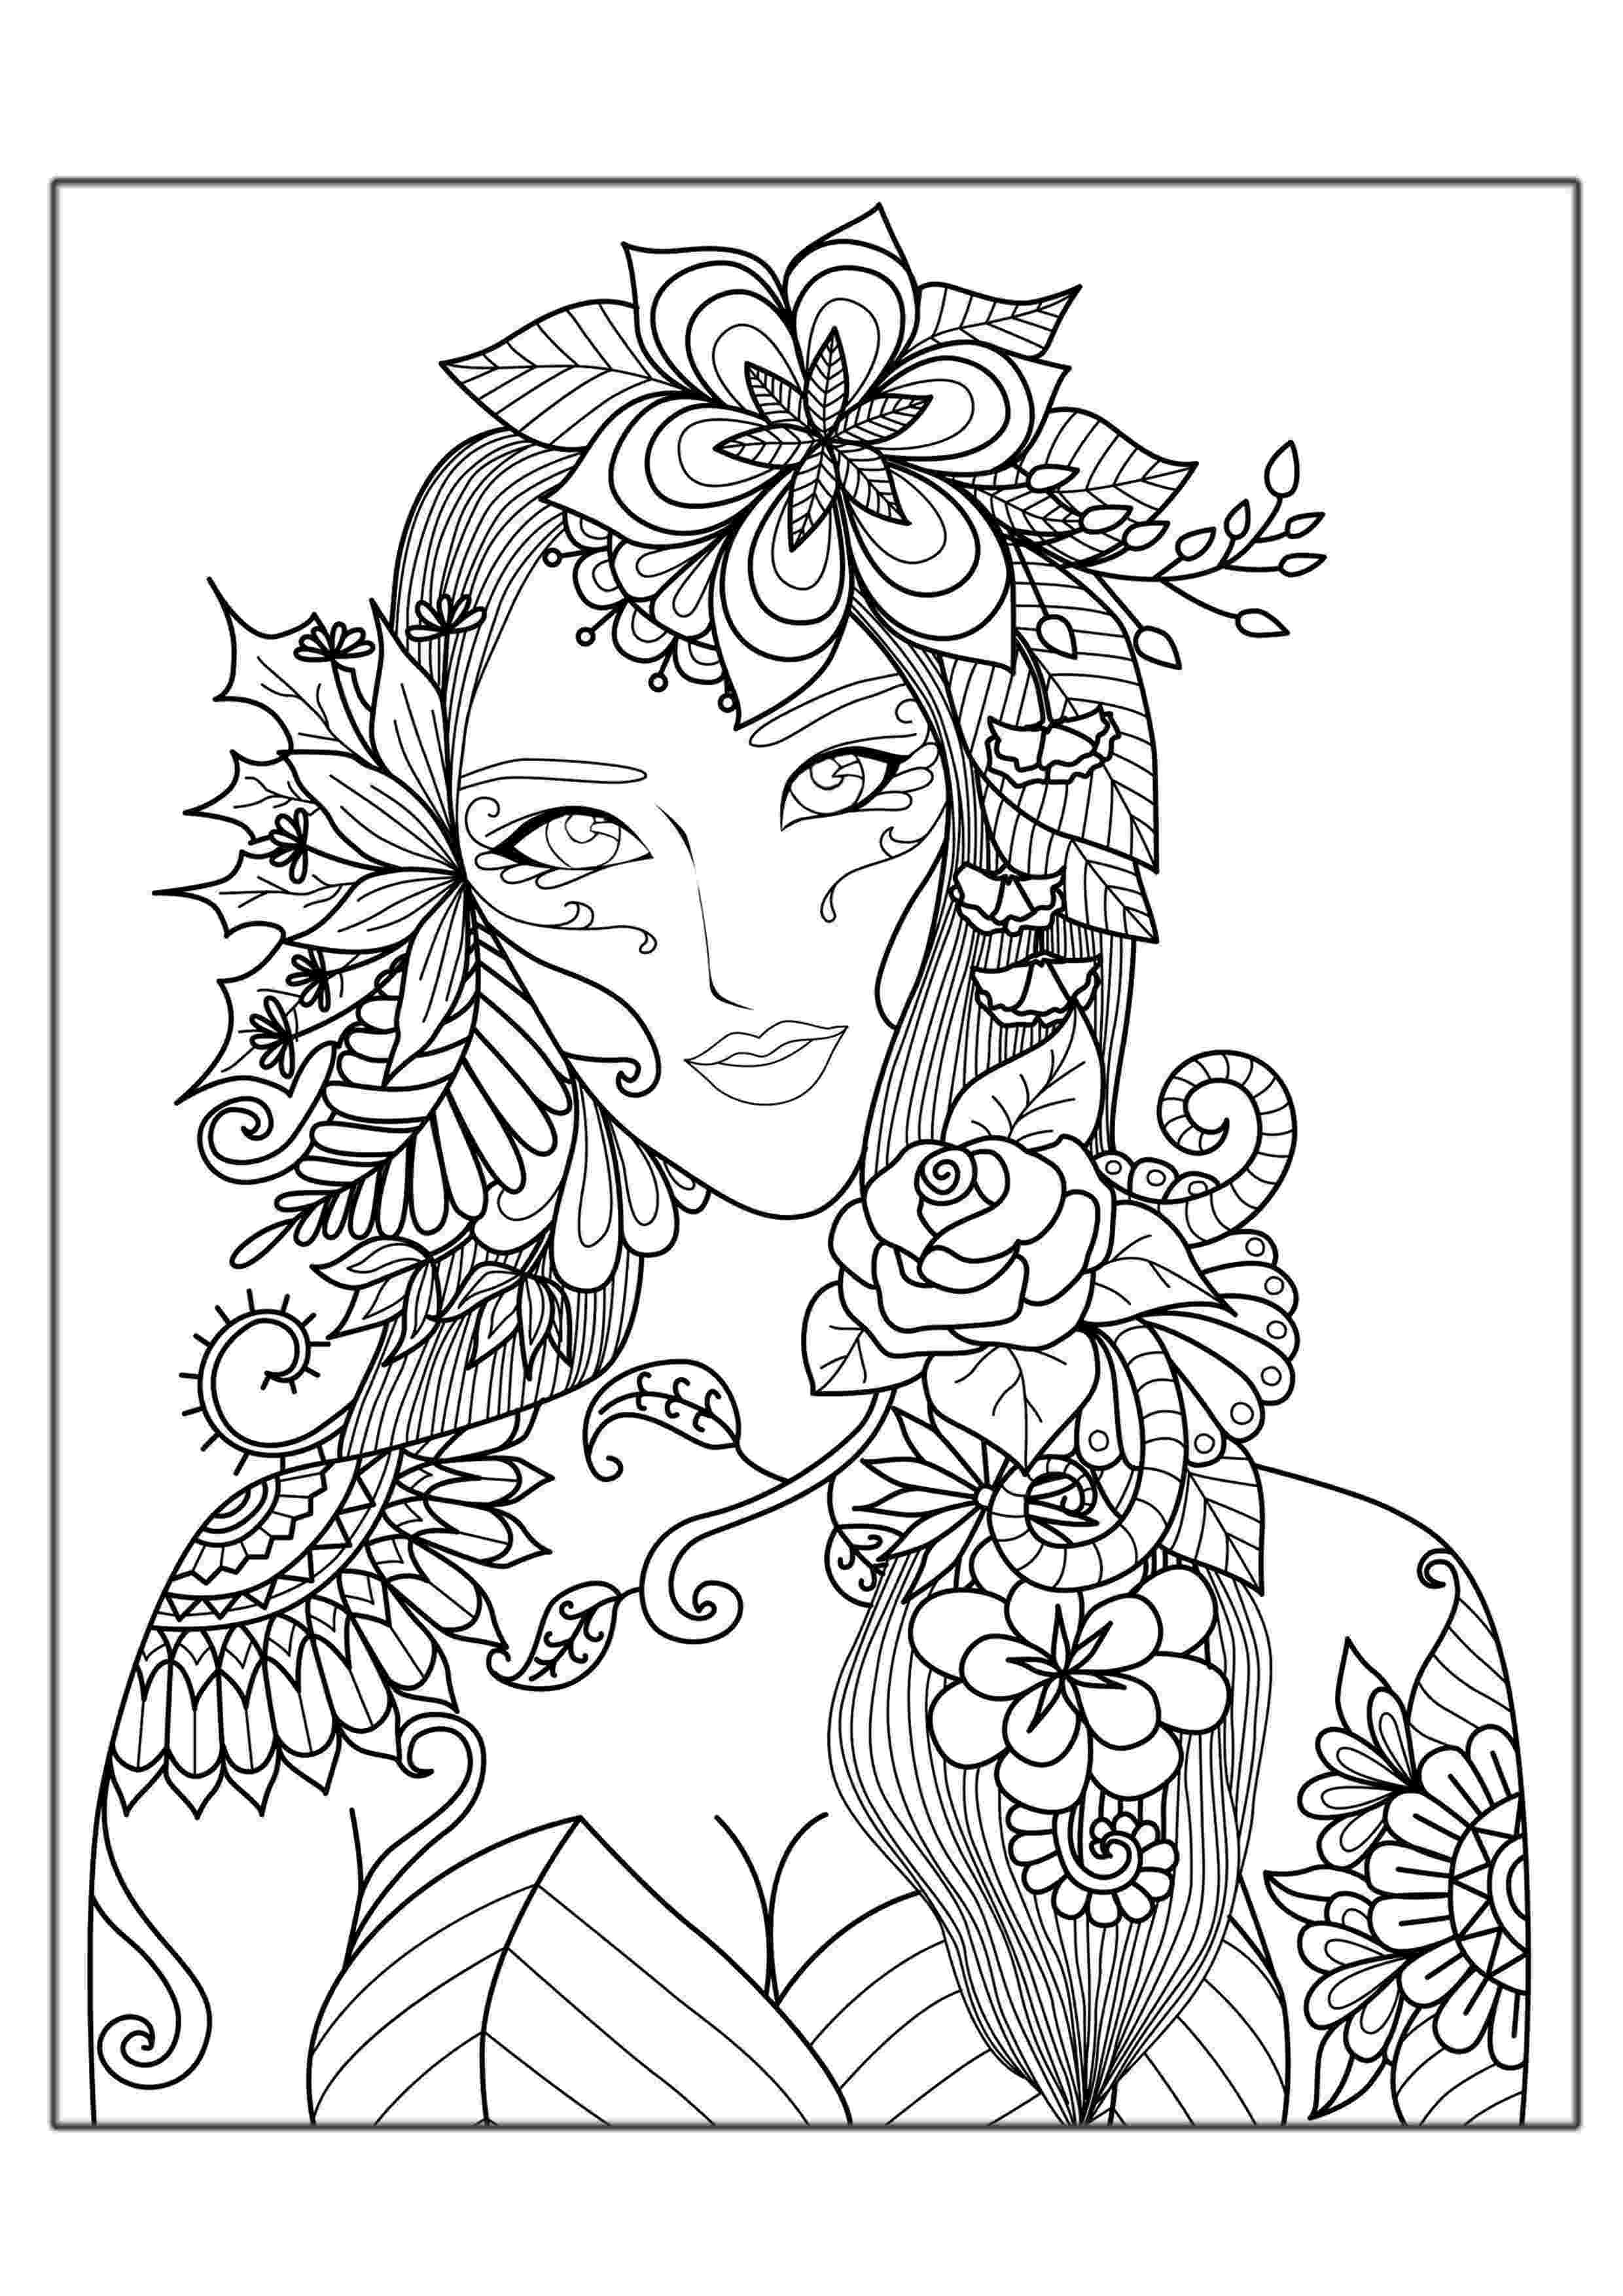 anti stress coloring book animals woman flowers anti stress adult coloring pages book stress anti coloring animals